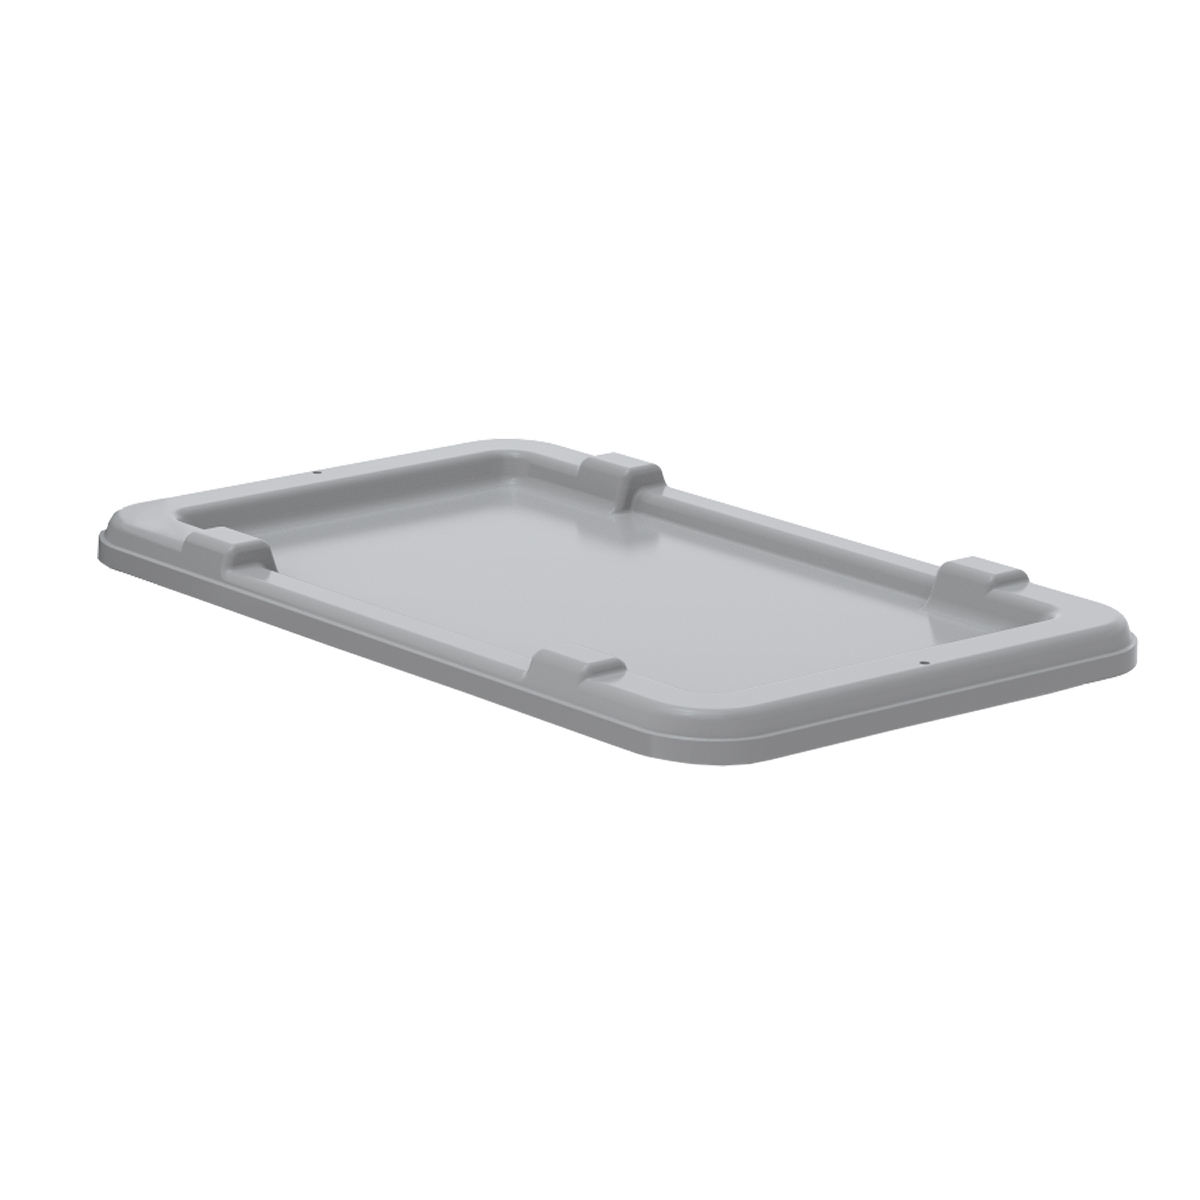 Lid for Cross-Stack Akro-Tub 34305, Gray (34005GREY).  This item sold in carton quantities of 6.